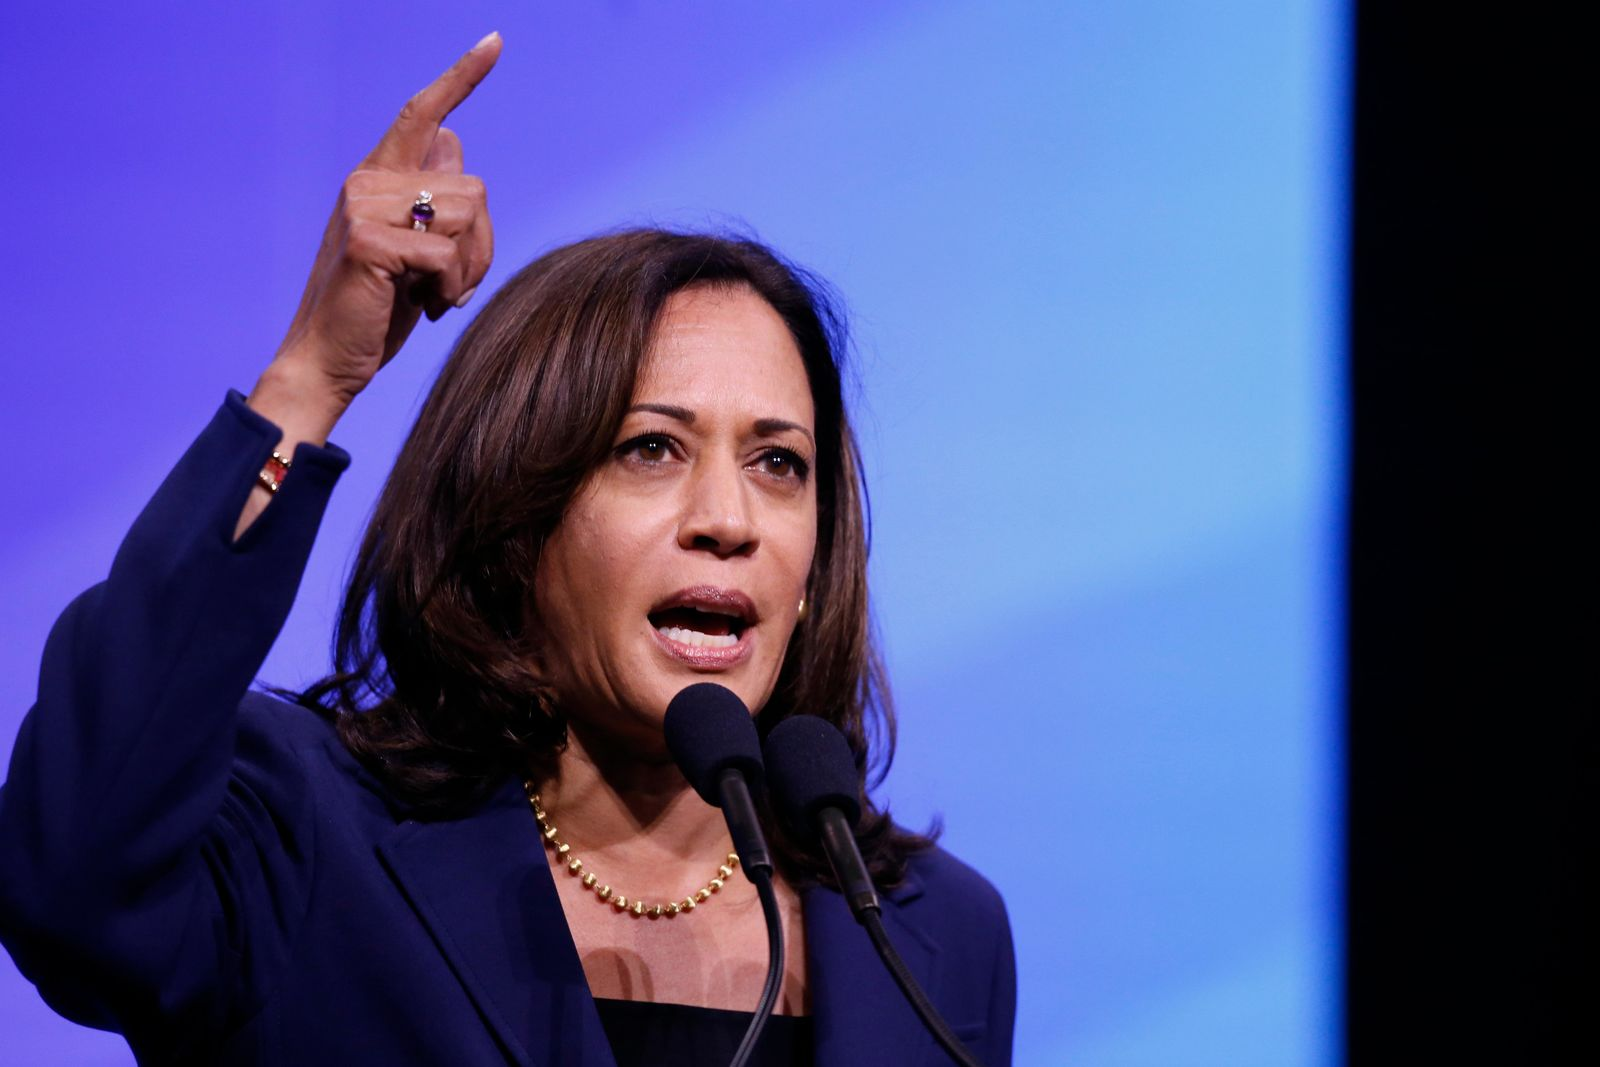 Democratic presidential candidate Sen. Kamala Harris, D-Calif., speaks during the New Hampshire state Democratic Party convention, Saturday, Sept. 7, 2019, in Manchester, NH. (AP Photo/Robert F. Bukaty)